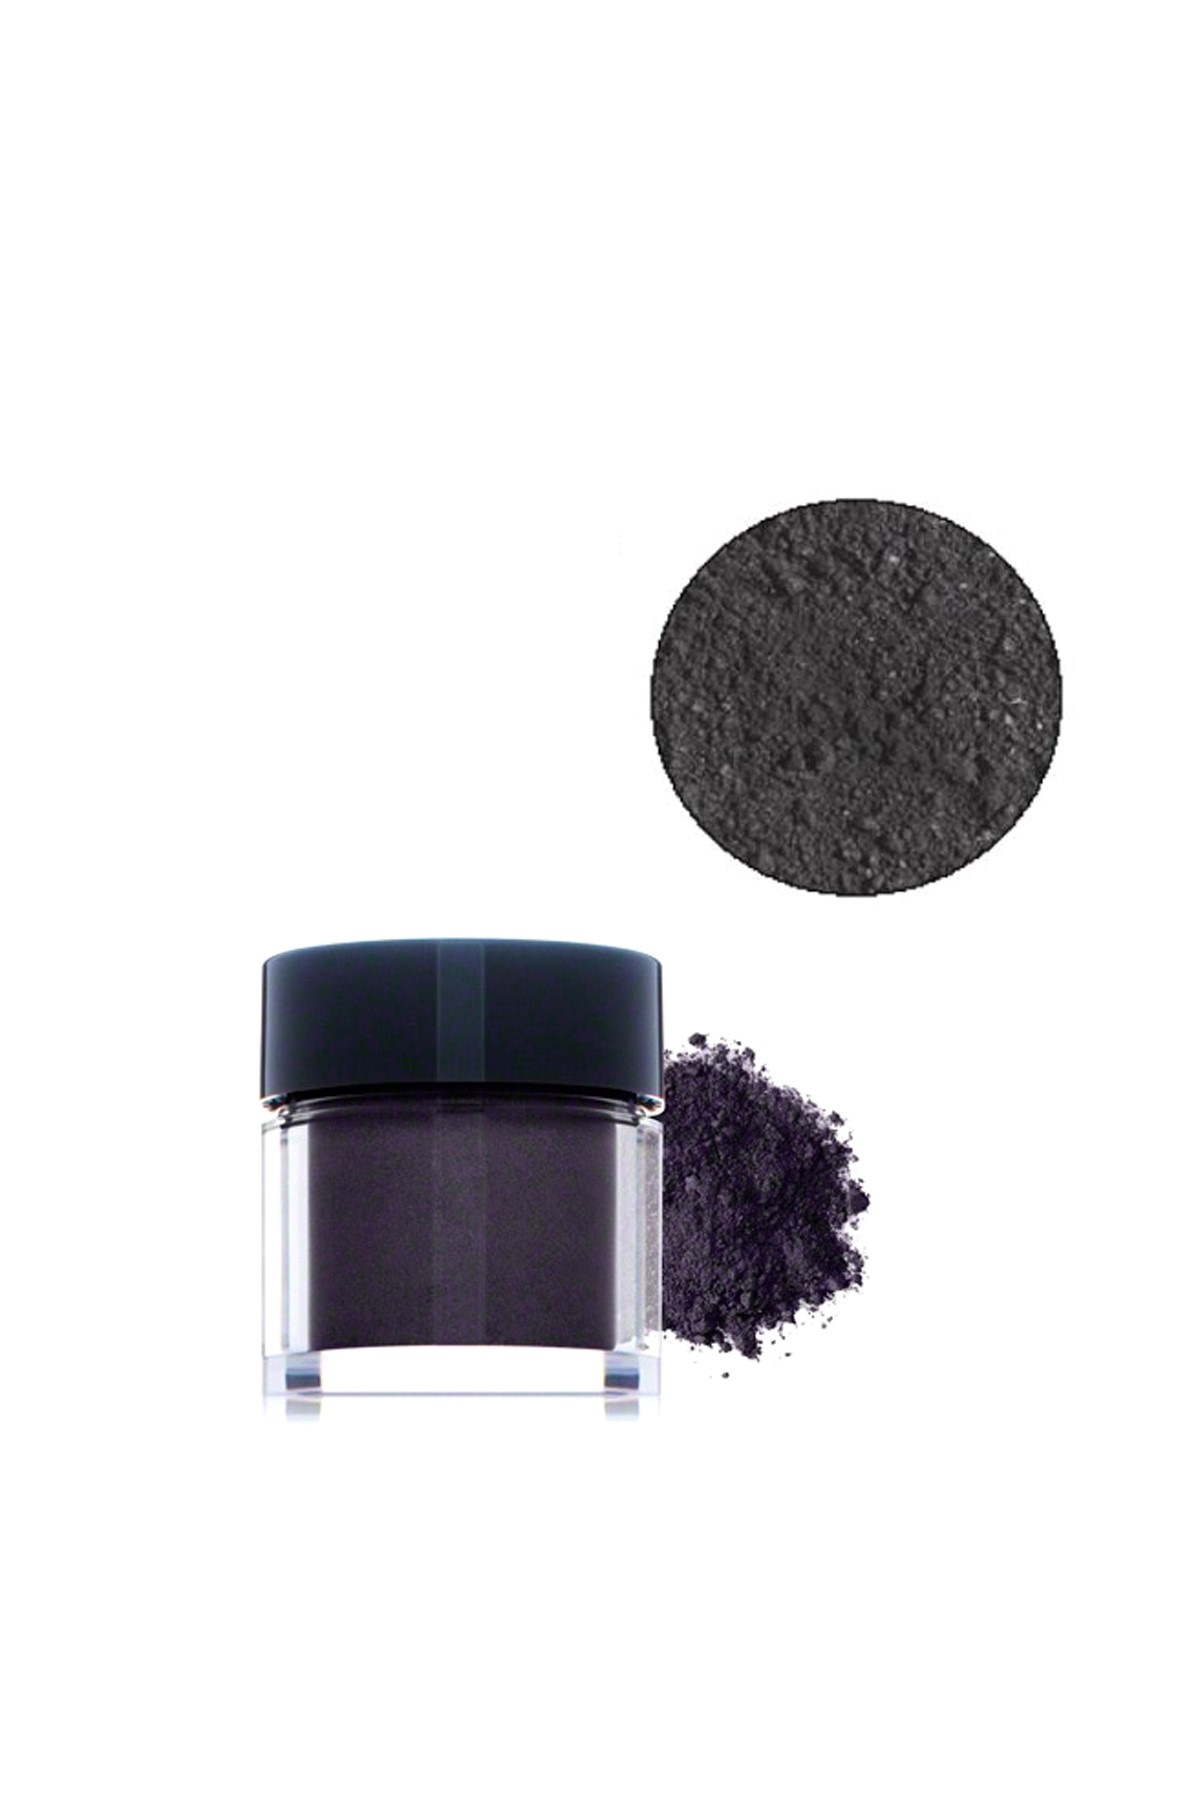 Young Blood Toz Mineral Far – Eyeshadow Raven 696137100197 – 65.88 TL